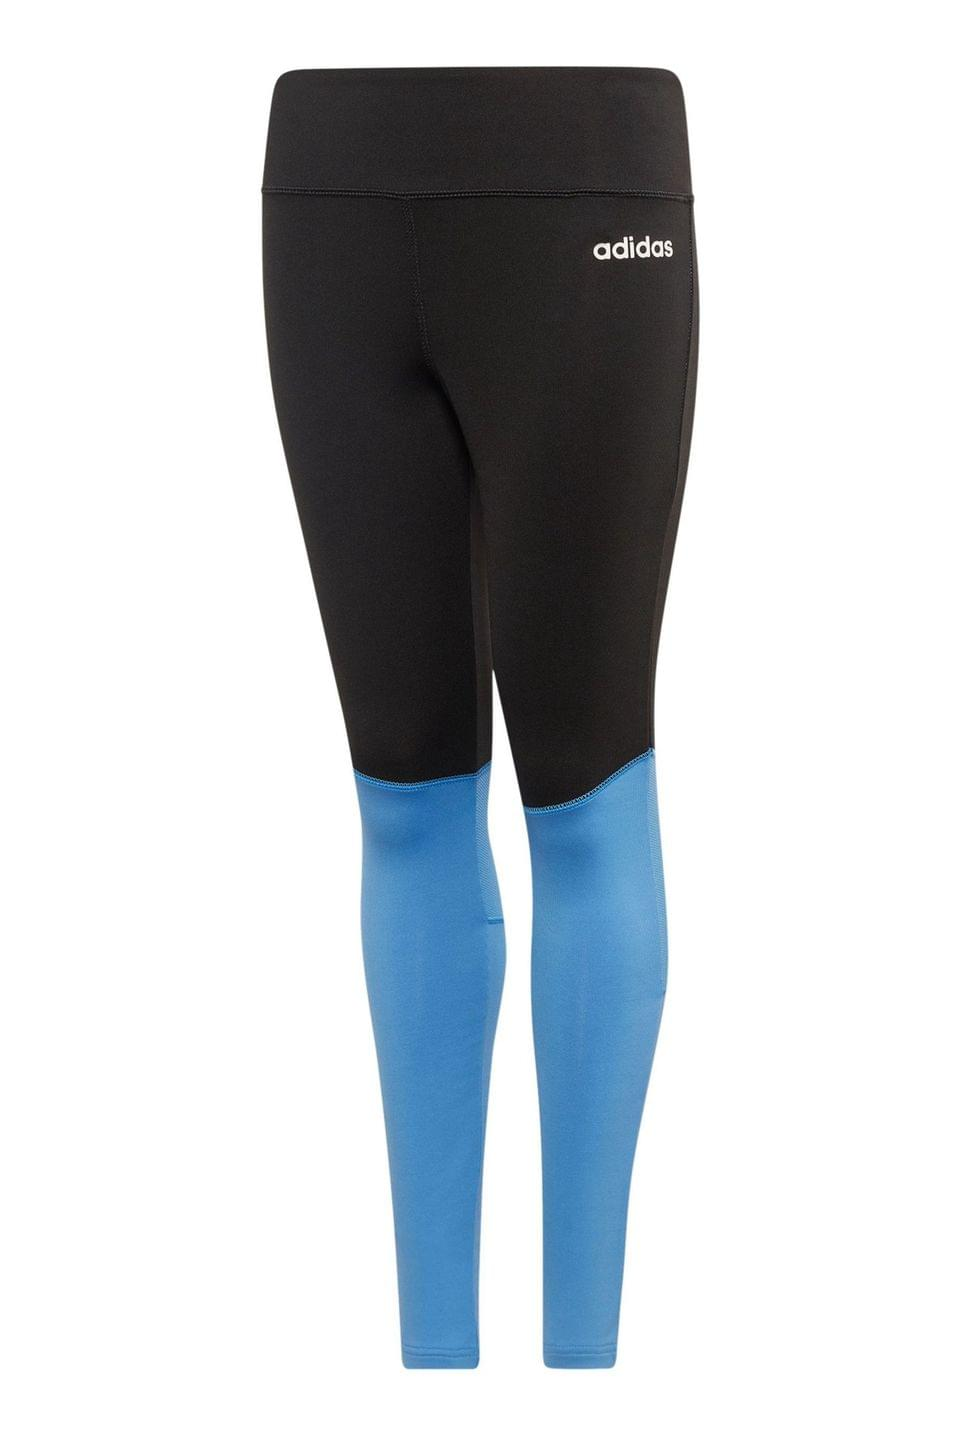 Girl's adidas Black/Blue Leggings